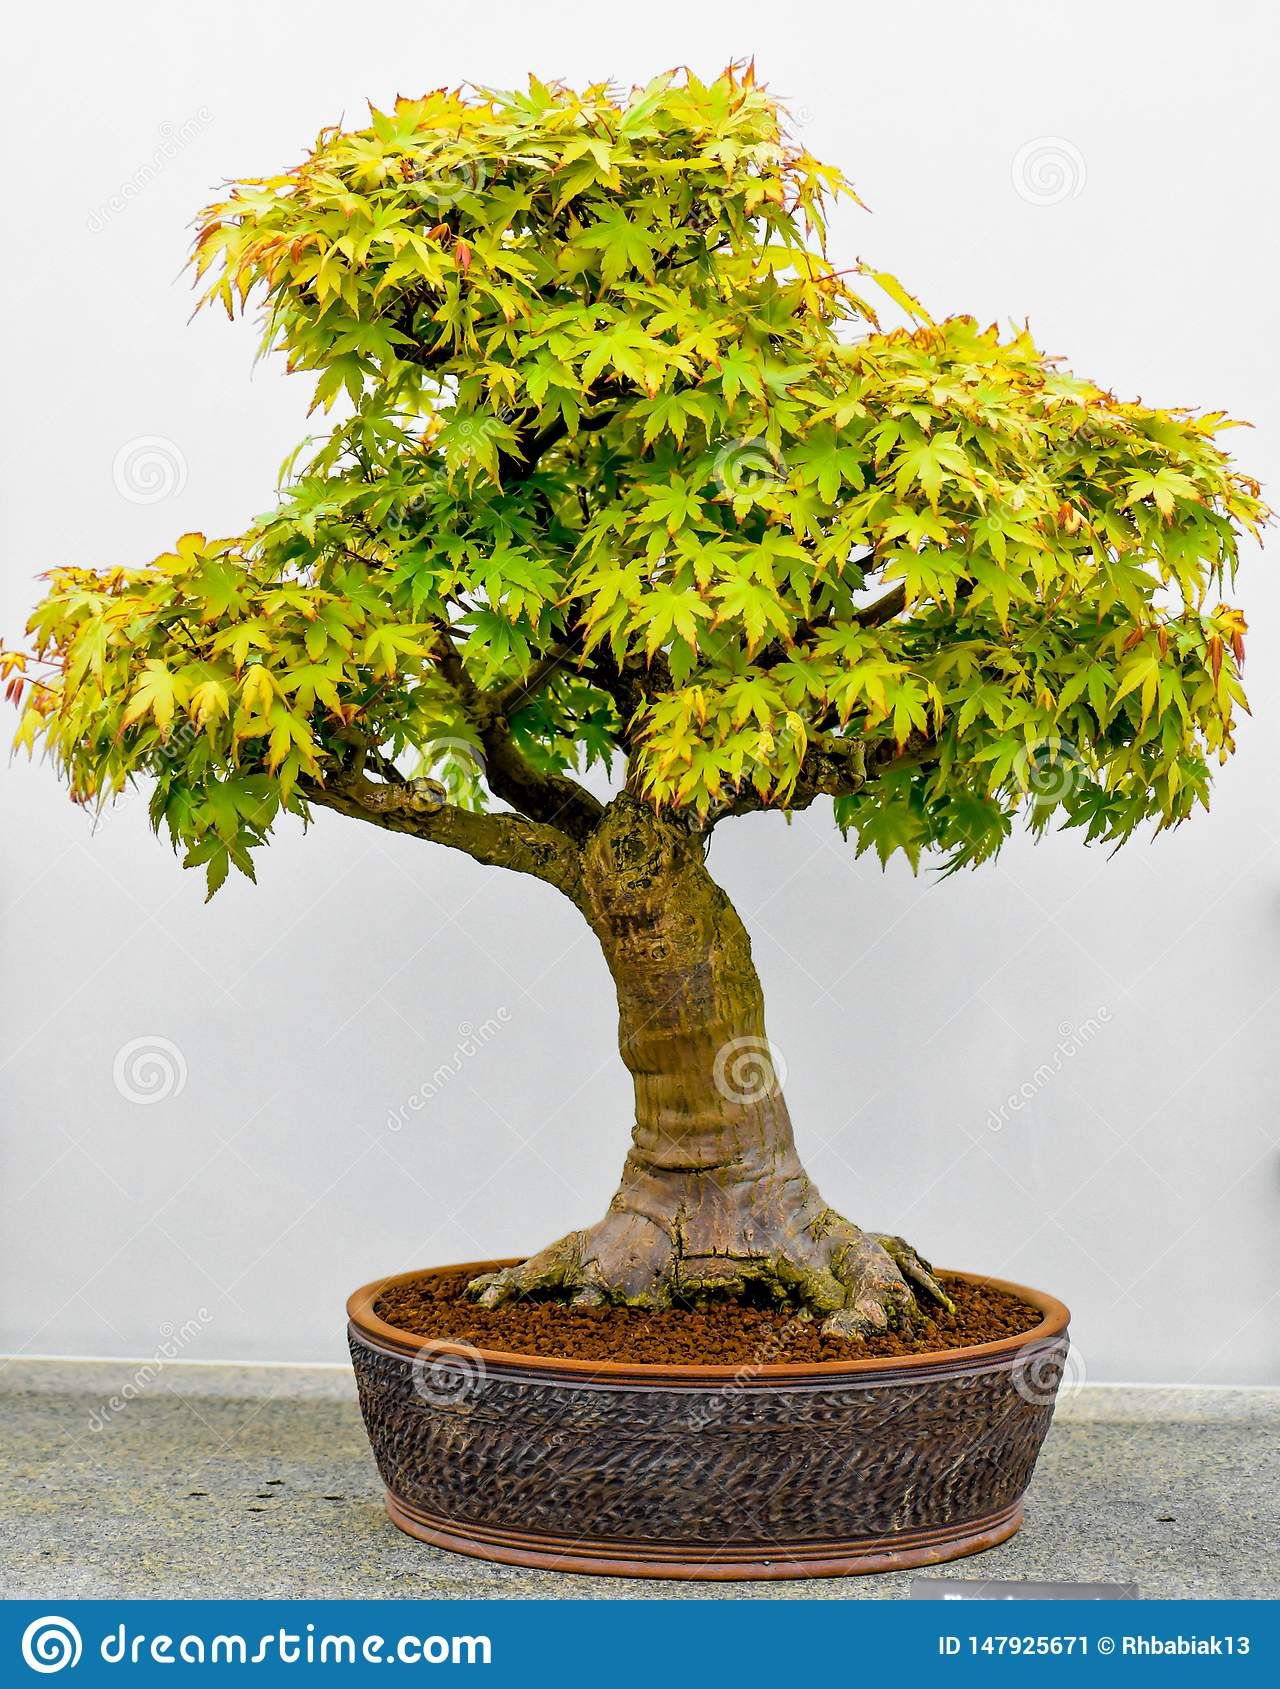 Japanese Maple Bonsai Tree In Planter Stock Image Image Of Bonsai Planter 147925671